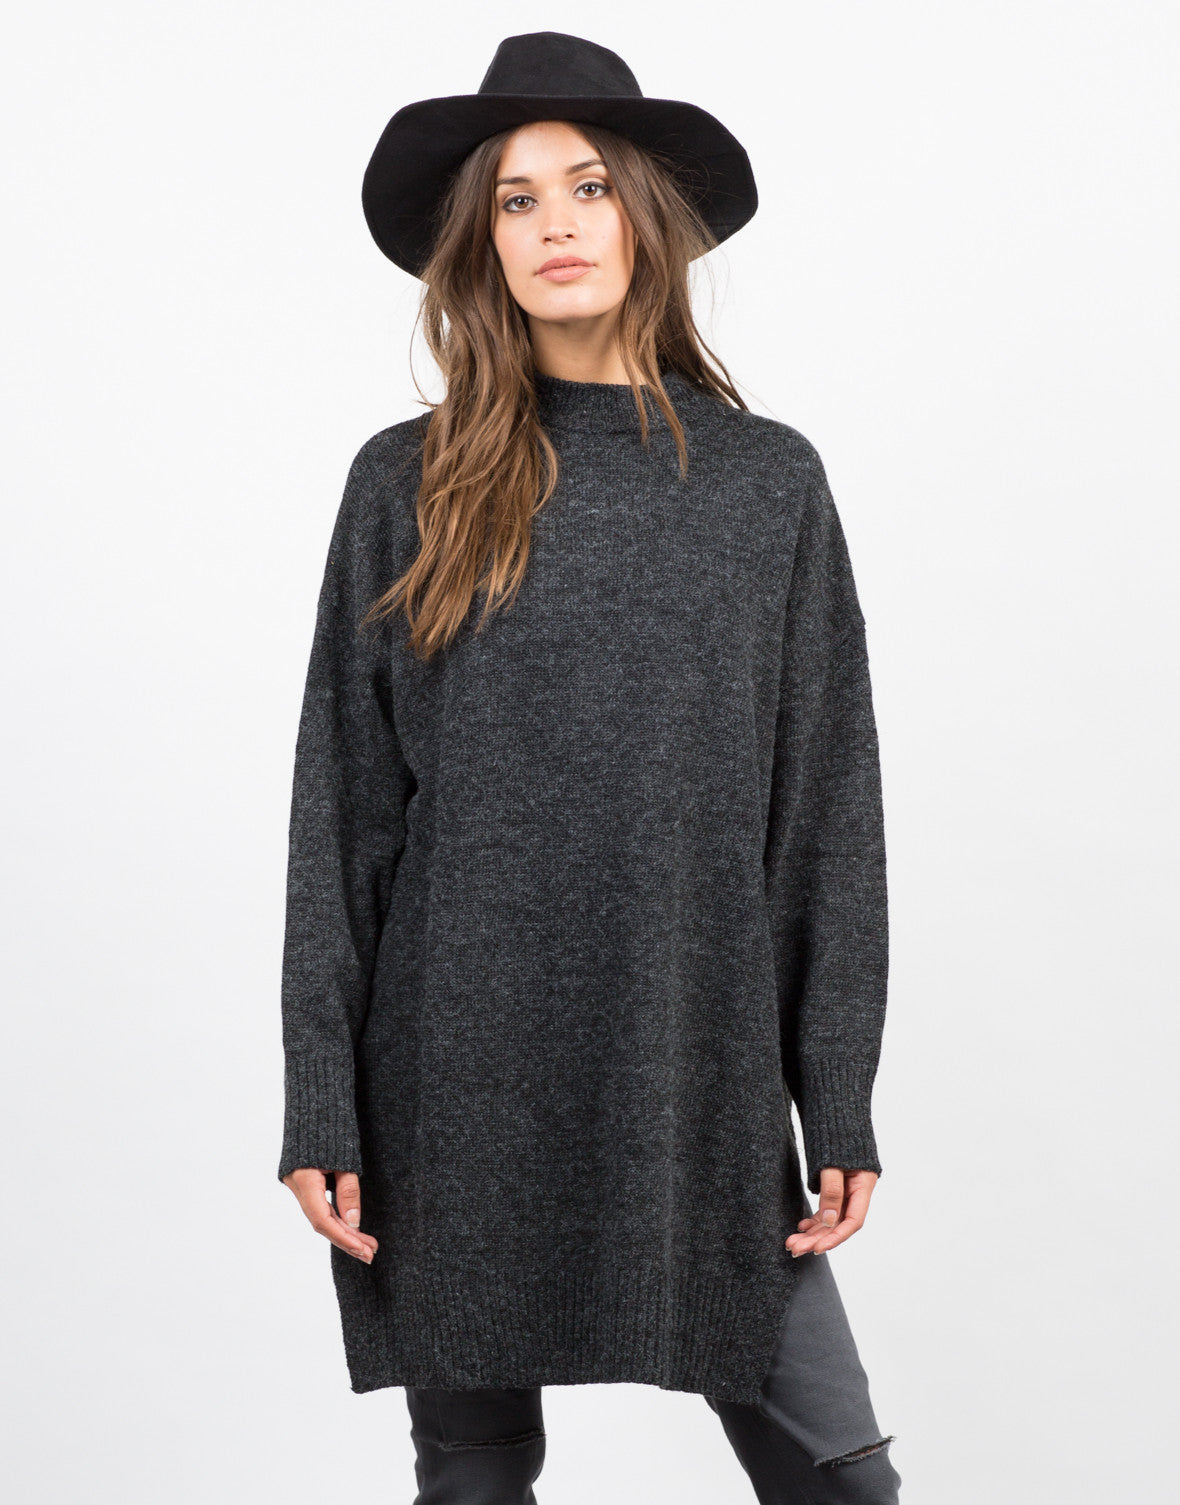 Front View of Oversized Long Knit Sweater